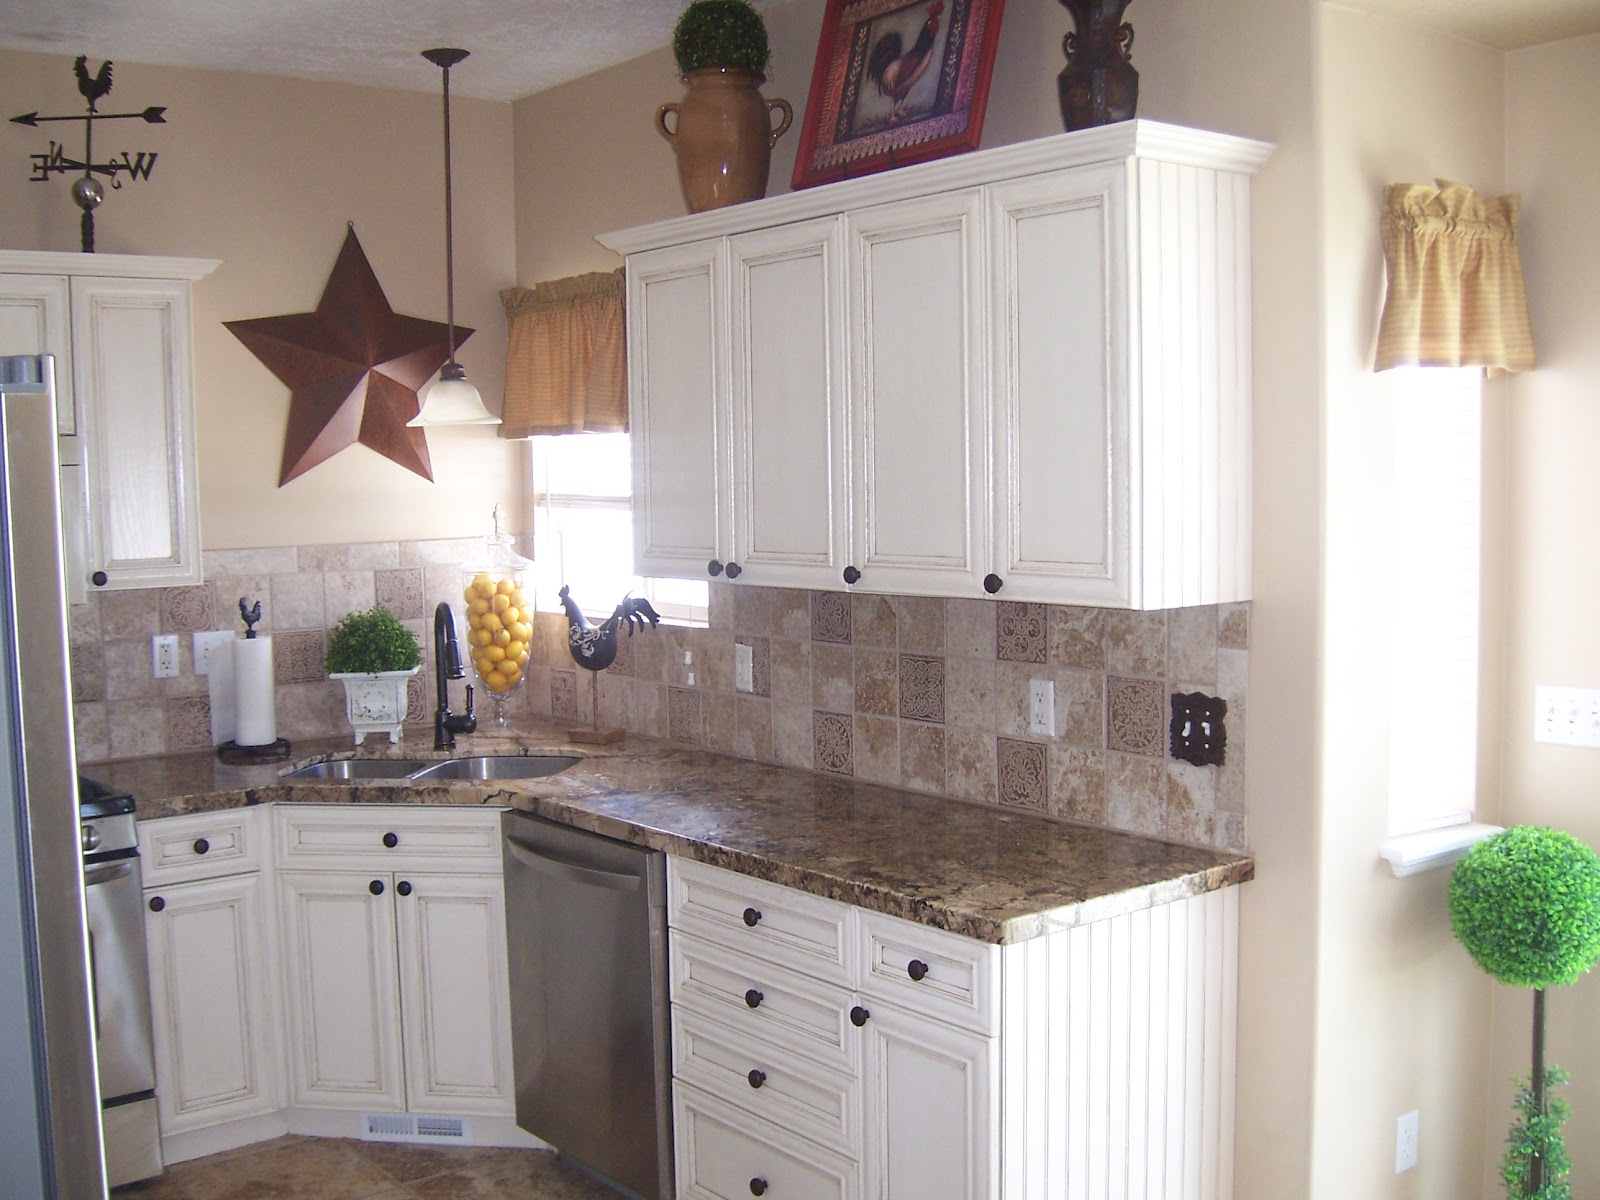 Cottage Charm Creations: Kitchen Before & After